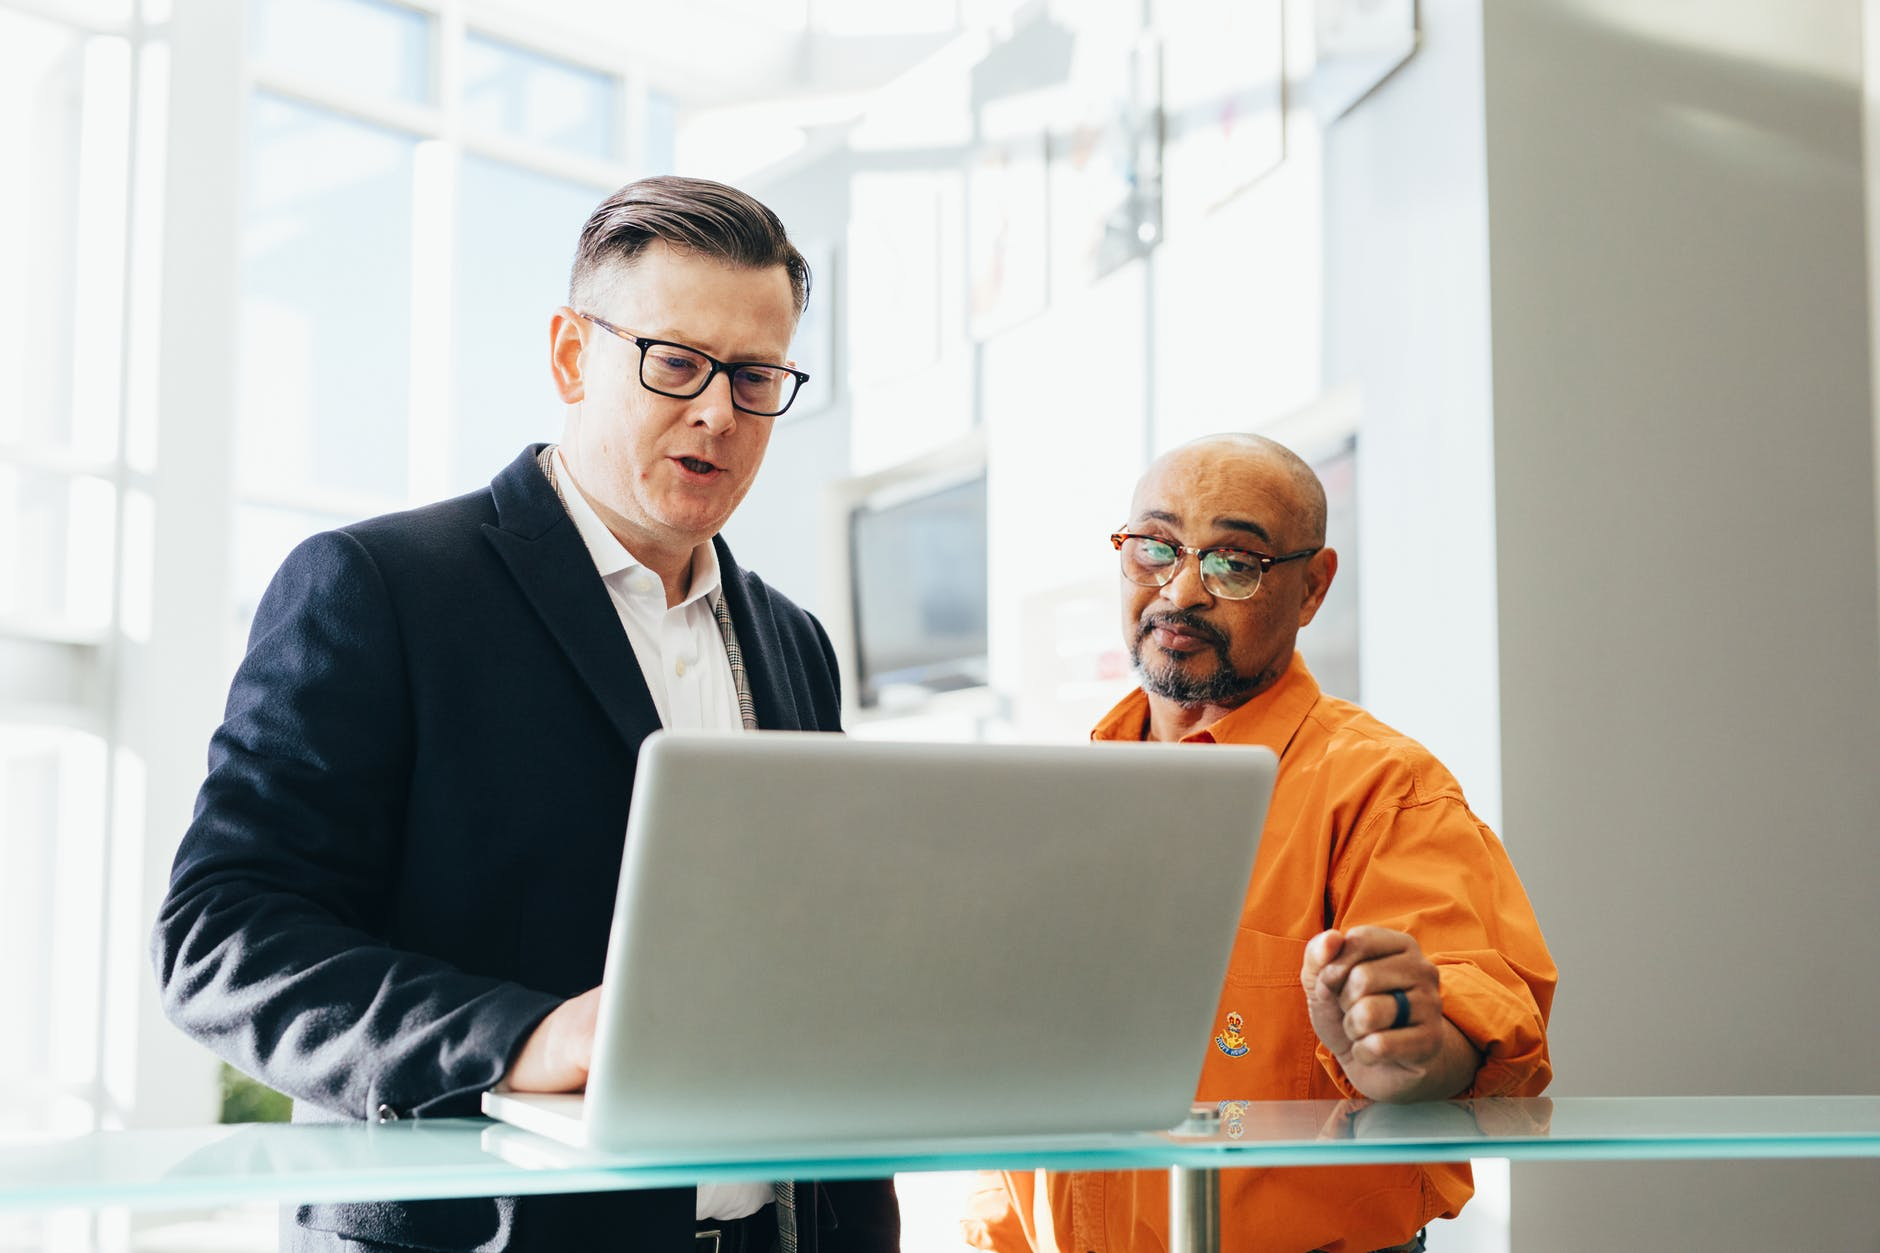 Two men stand at a computer discussing how to get technical support from briskData